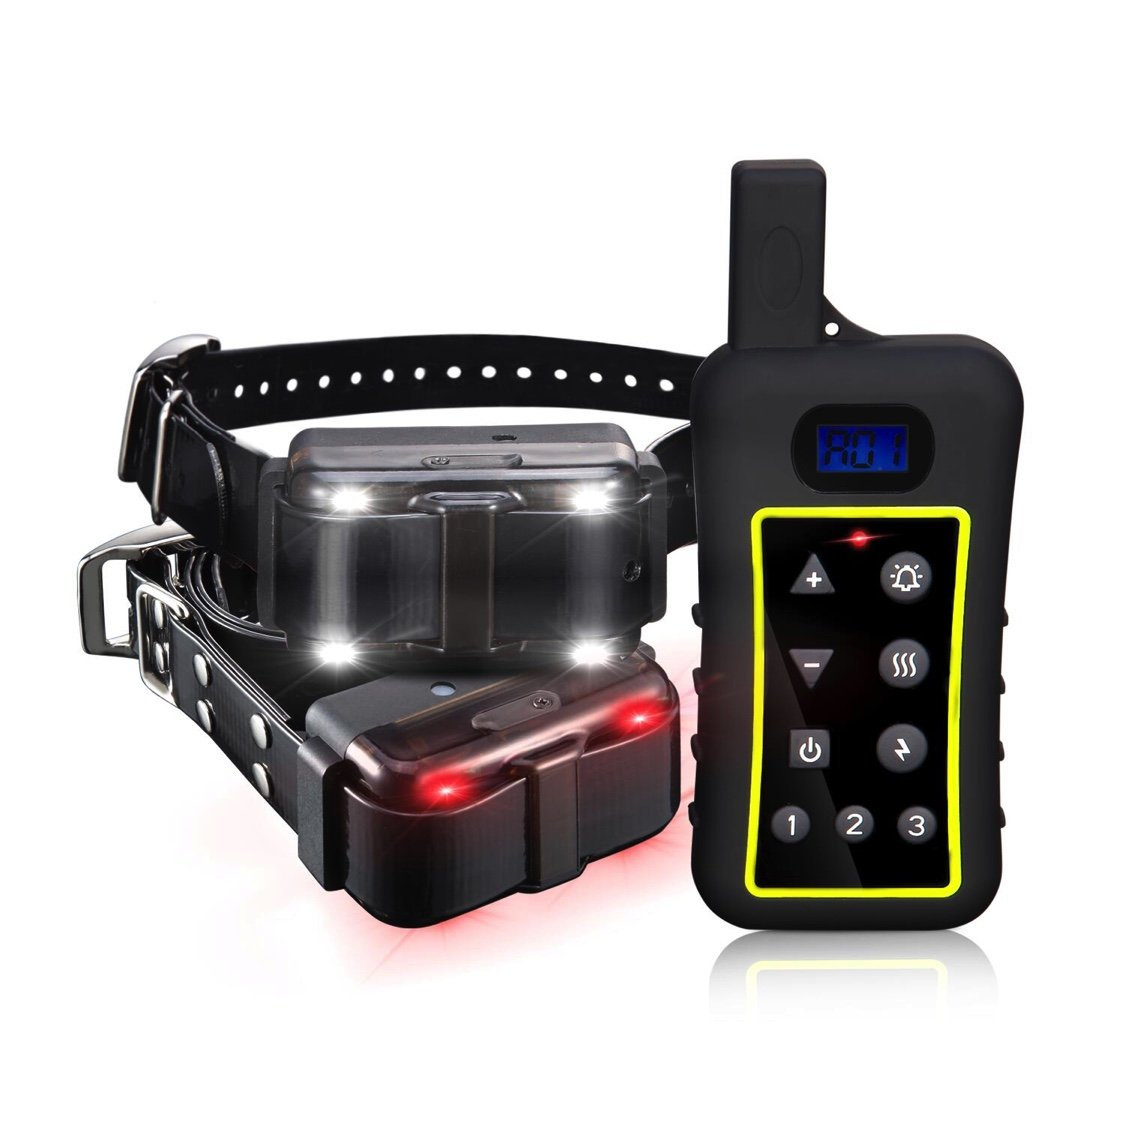 Pet Control HQ Remote Dog Training Collar, Waterproof & Rechargeable Pet Training Collar All Size Dogs, Dog Training Equipment With Built-in Automatic Anti Bark Control Suitable for 2 Dogs